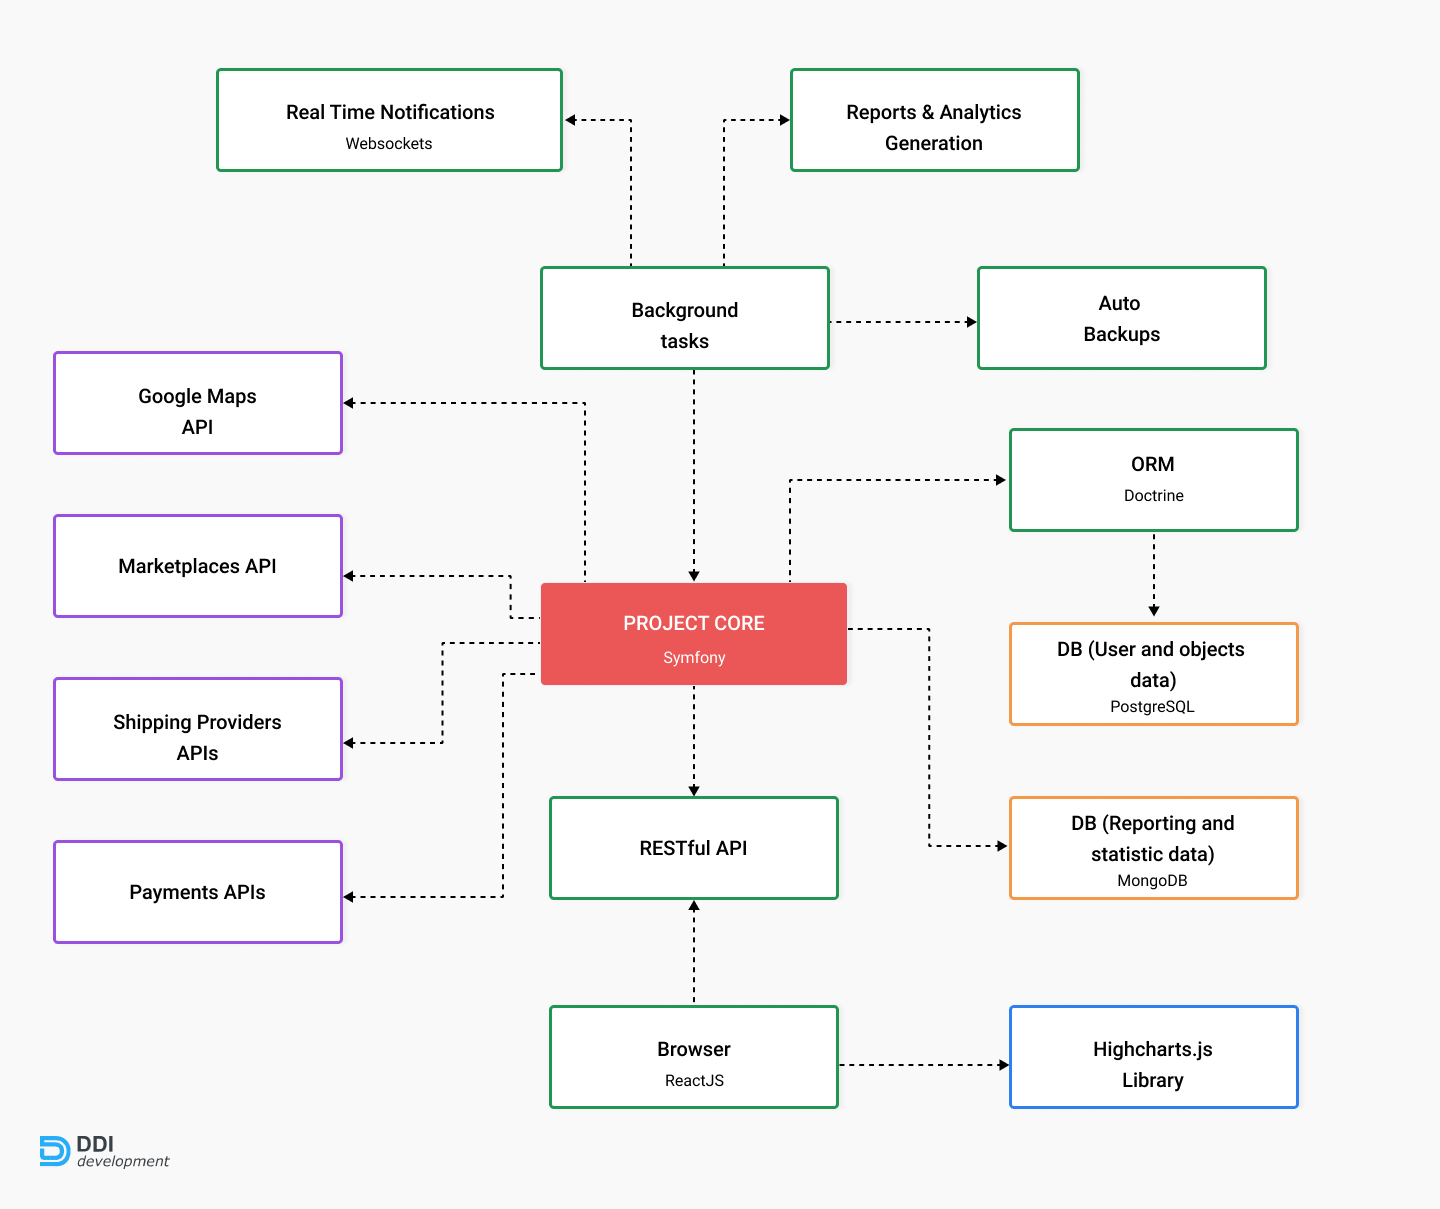 Project Structure of inventory management platform